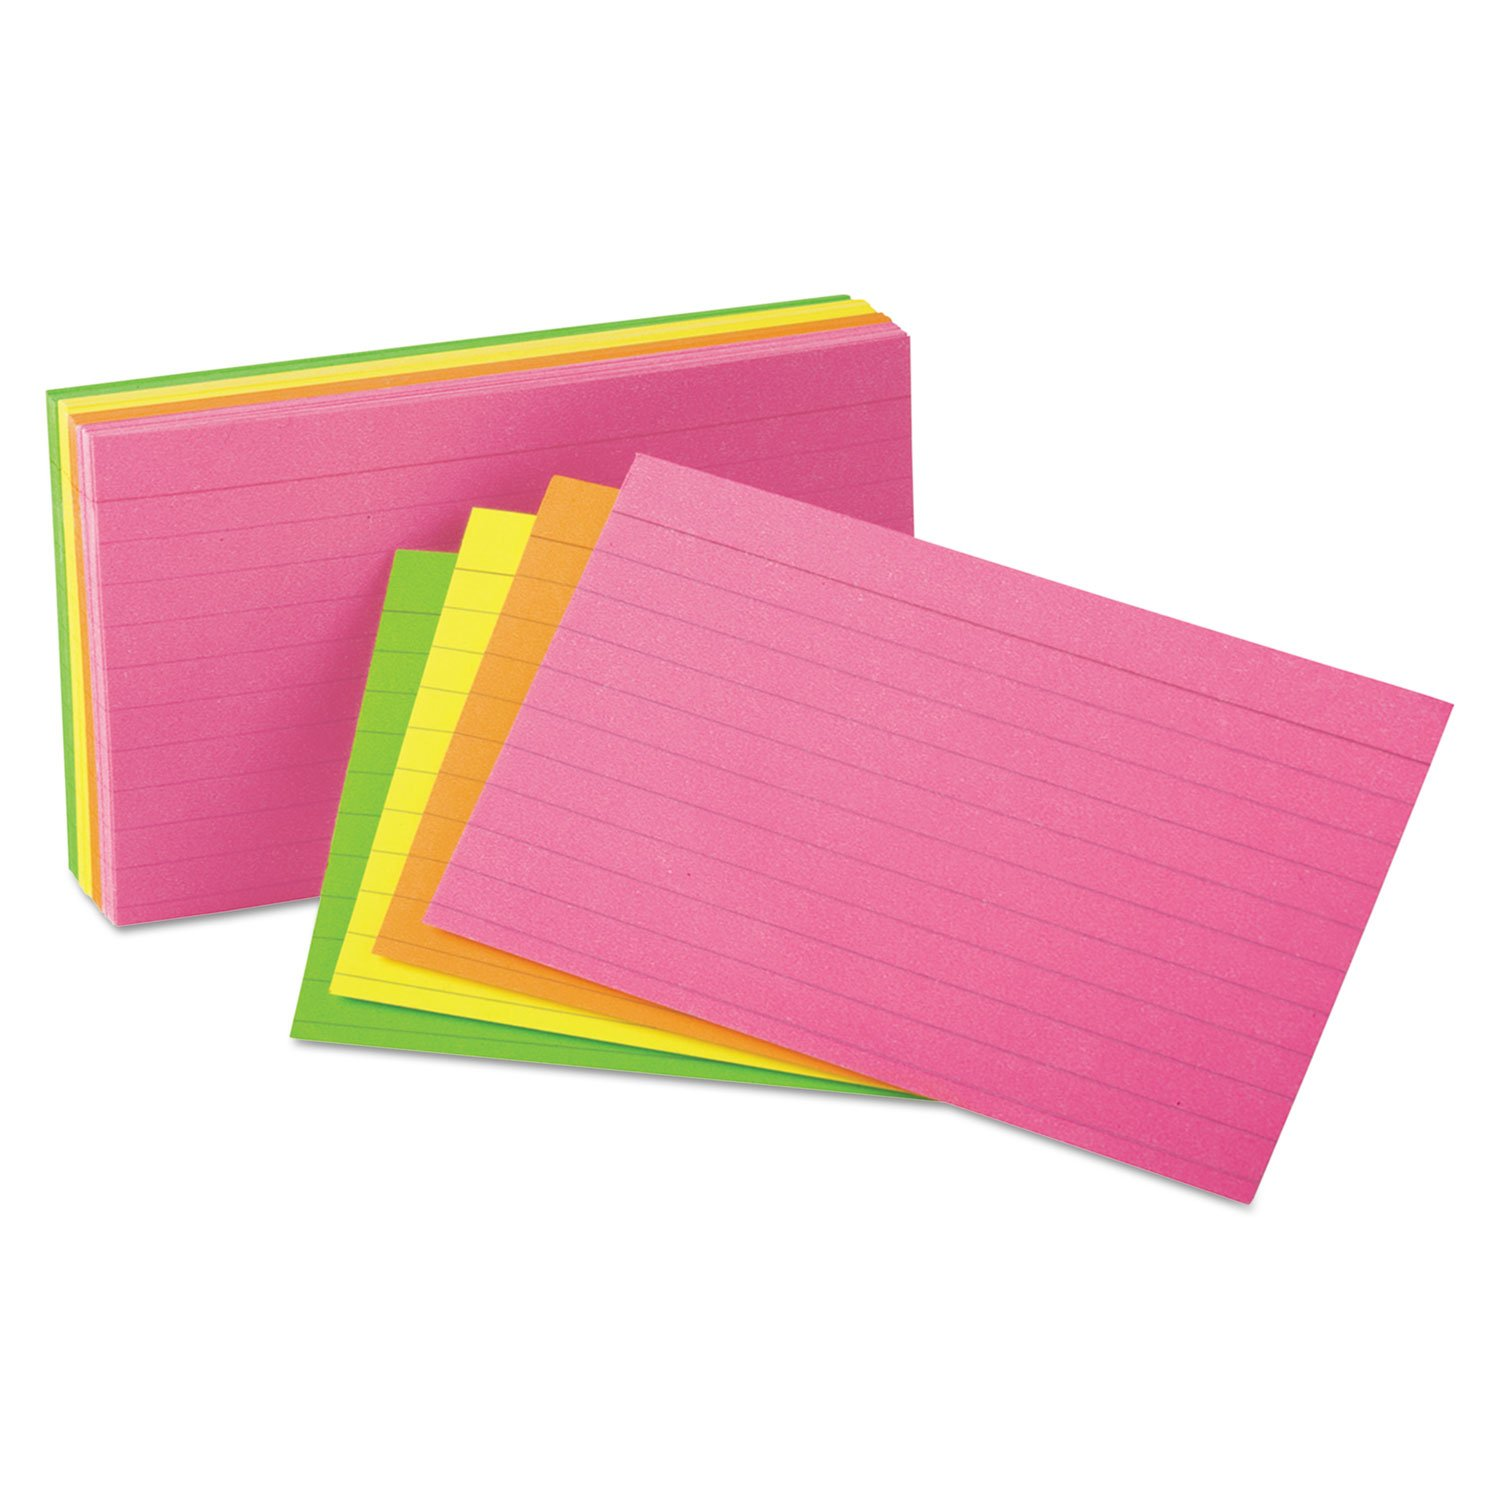 Oxford 40279 Index Cards, Packaged, 3''x5'', Ruled, 100/PK, Assorted Glow